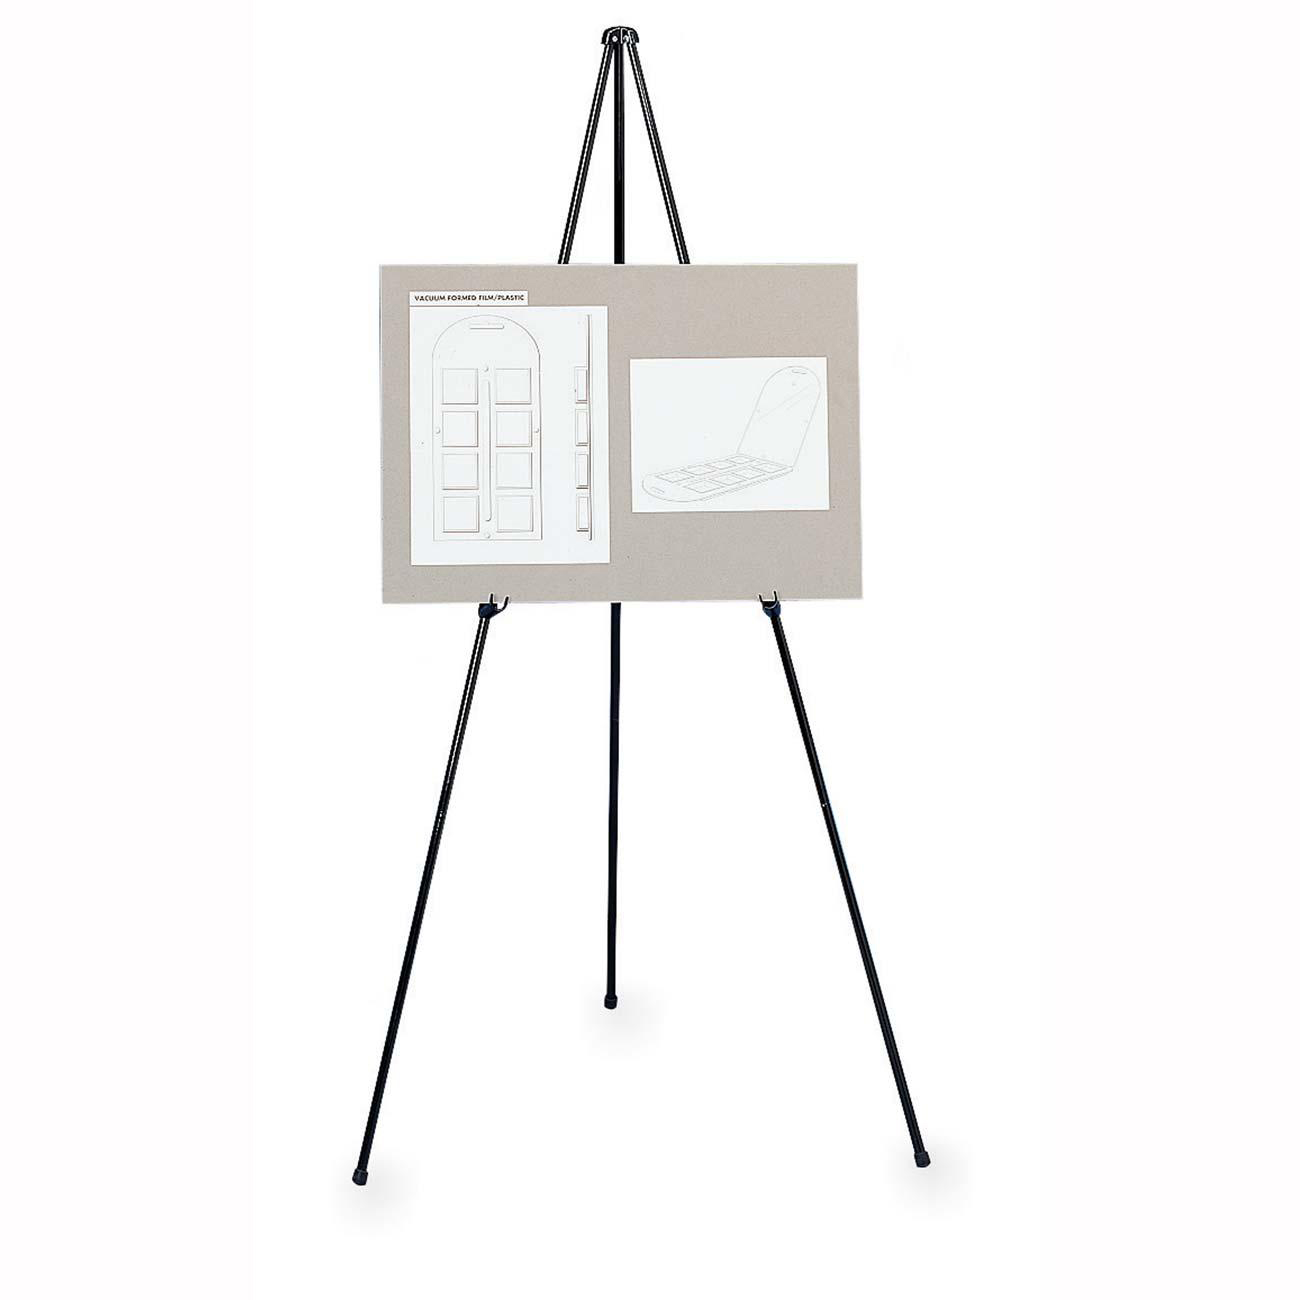 Adjustable Display Folding Easel Stand